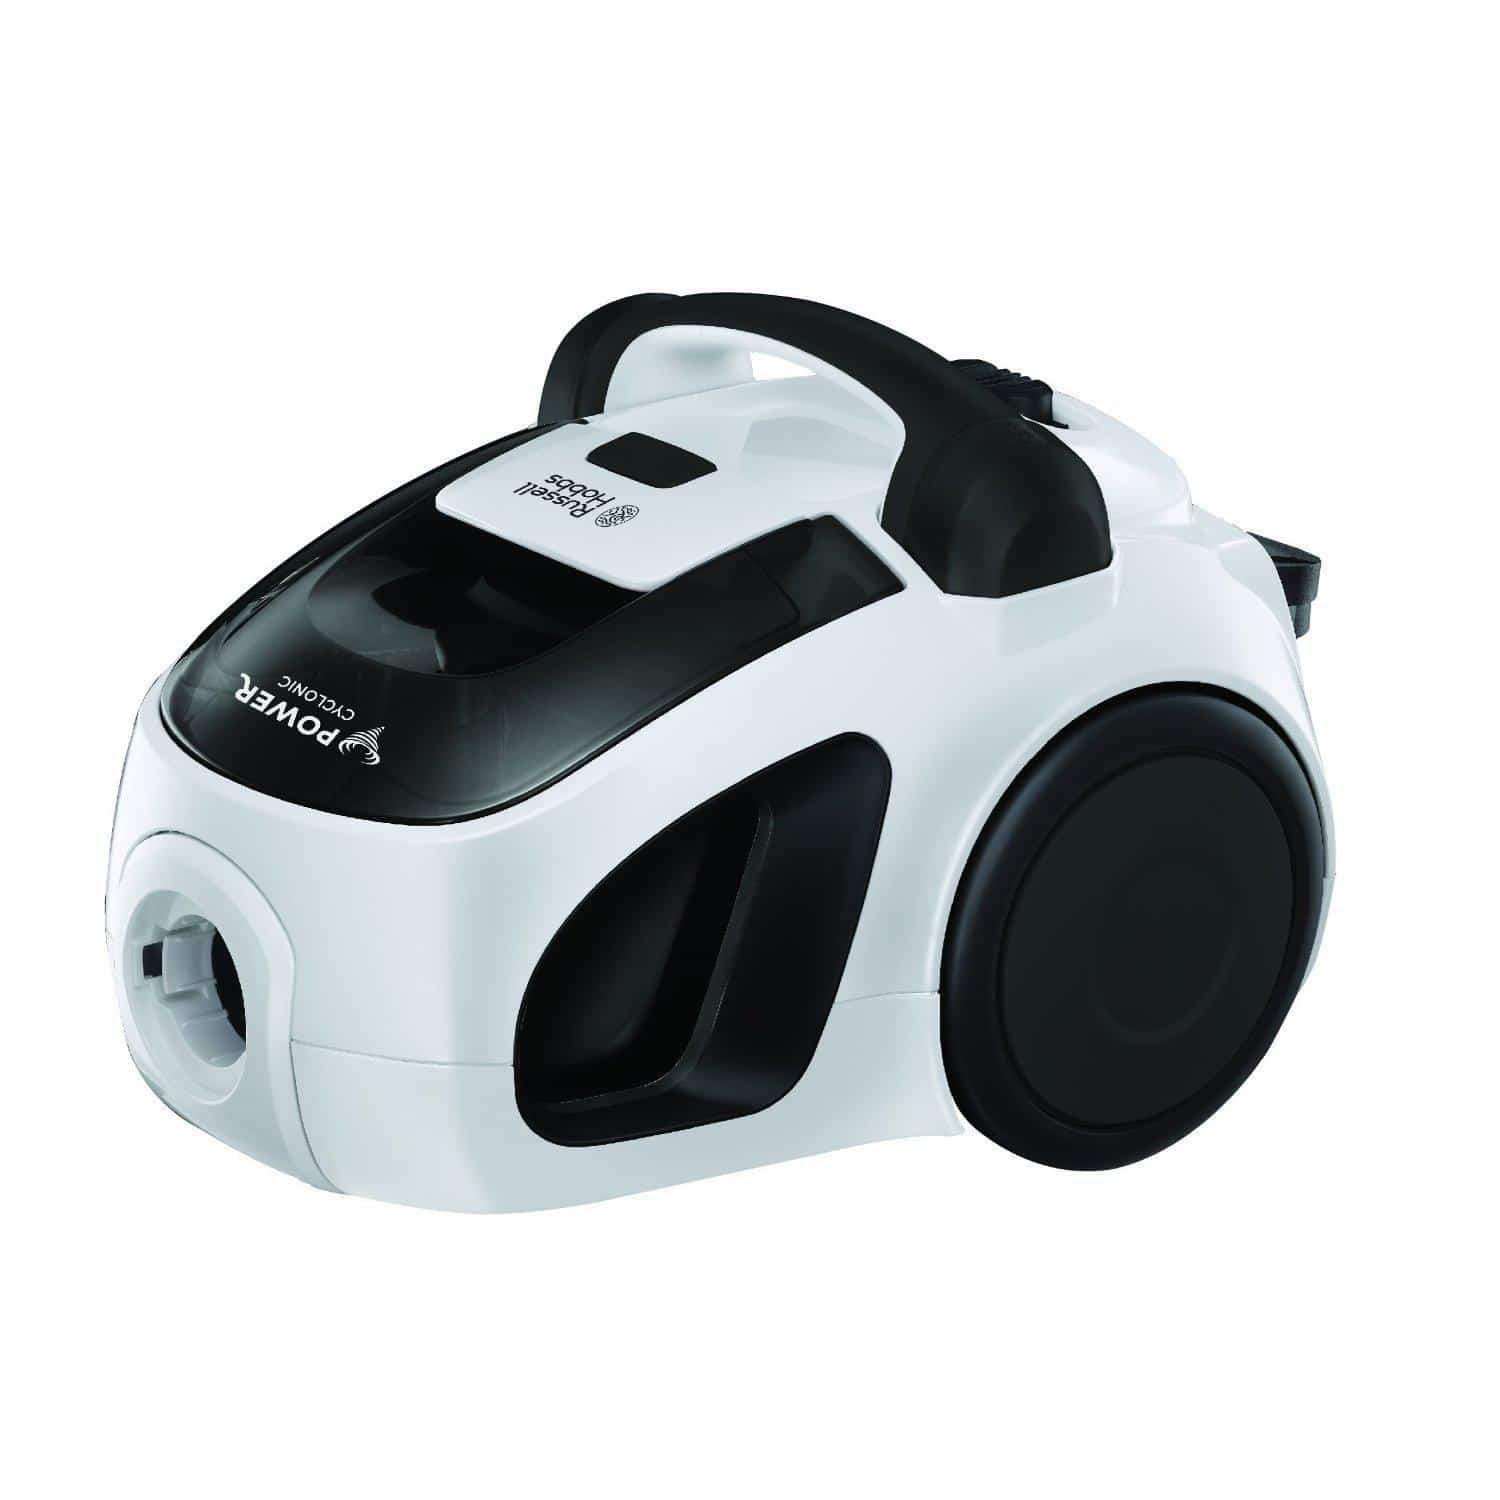 avis aspirateur russell hobbs test comparatif. Black Bedroom Furniture Sets. Home Design Ideas